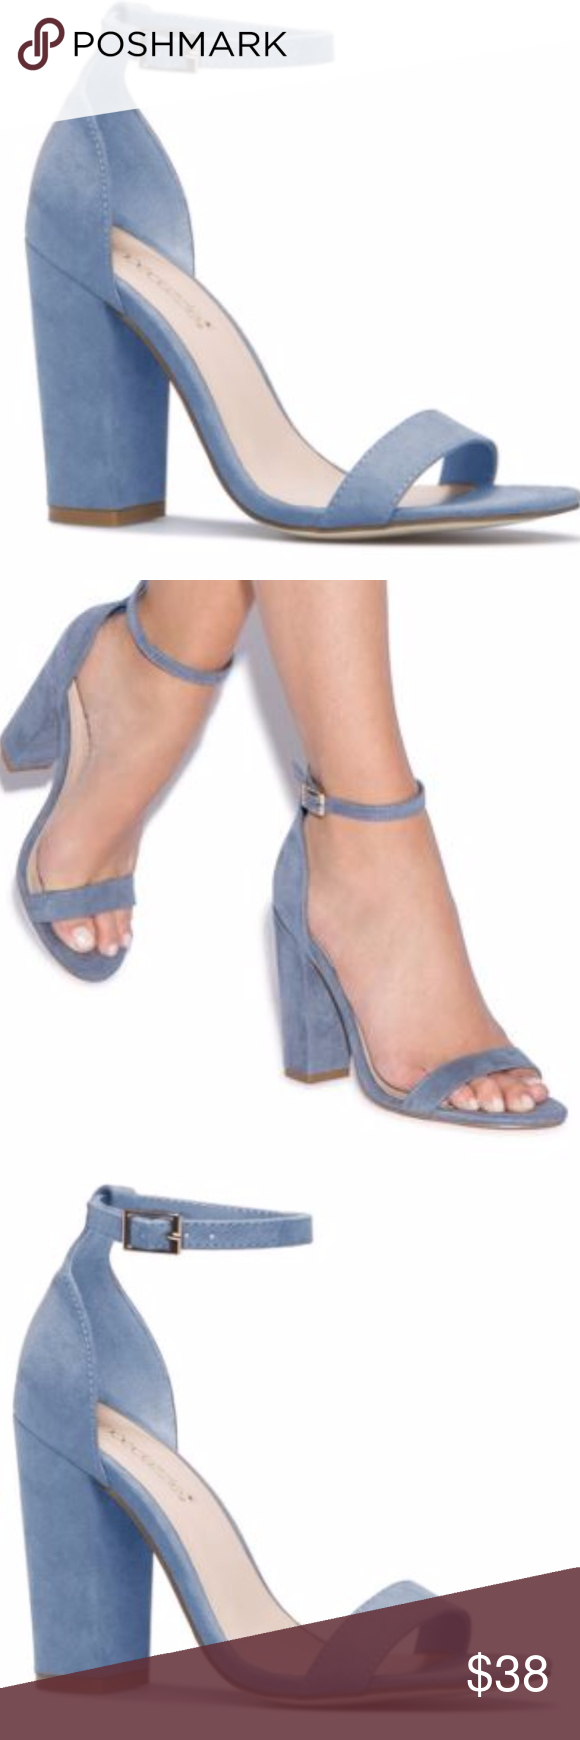 f317337ab1644 Dusty Blue BLOCK HEEL - Bran New SIZE: 9 MATERIAL: Faux-suede. Imported.  COLOR: DUSTY BLUE OUTSIDE HEEL HEIGHT:4